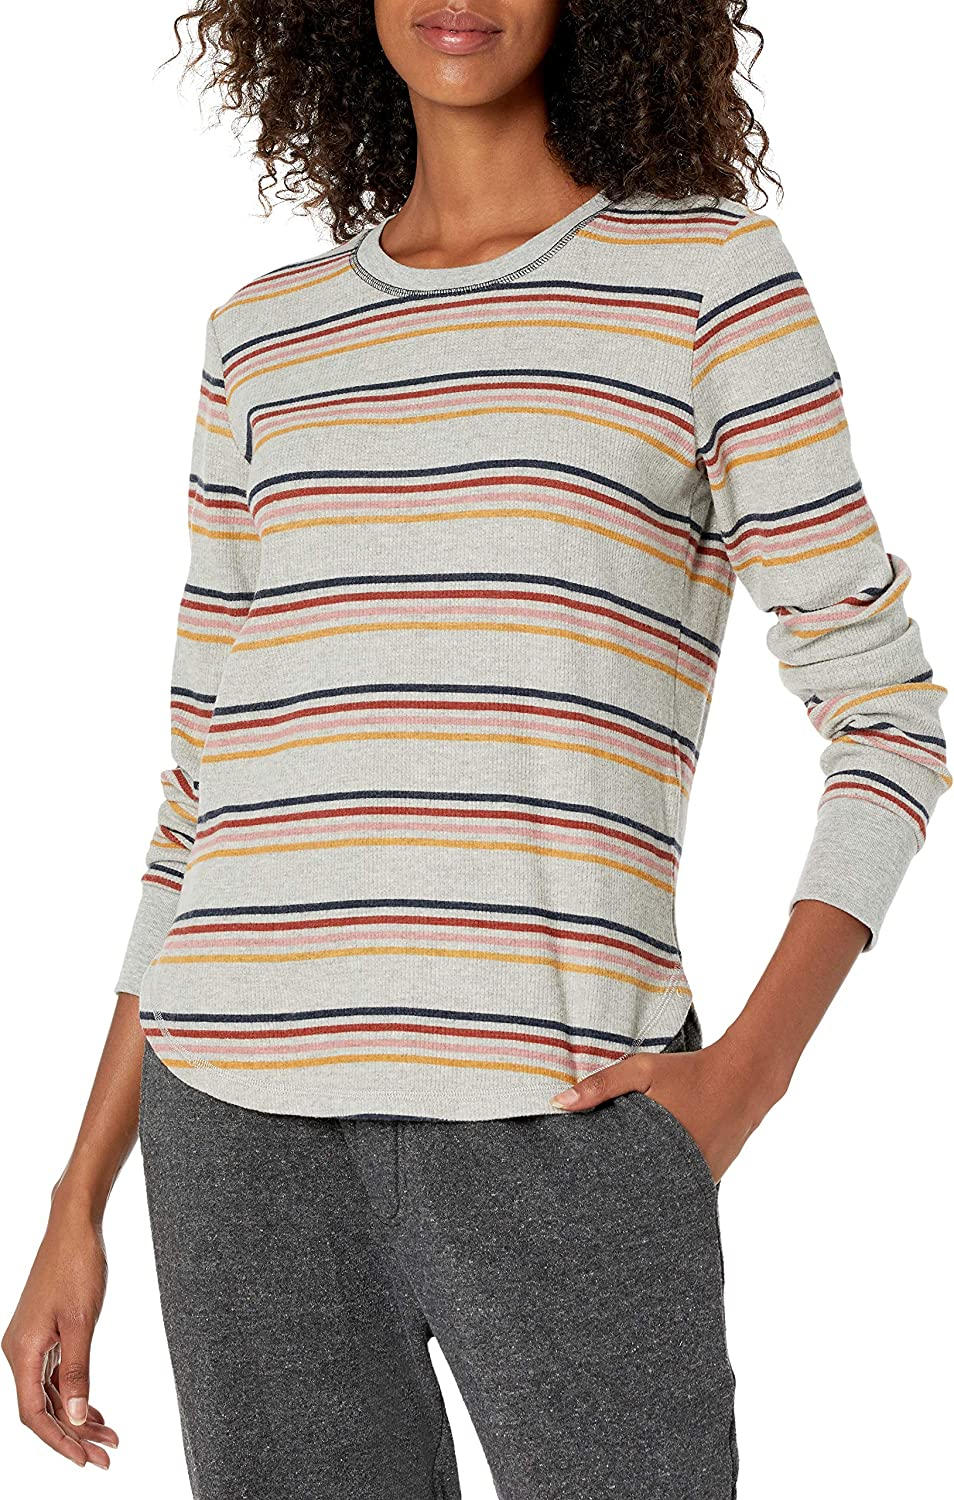 PJ Salvage Women's Retro Revival Top Sleeve Max Discount is also underway 71% OFF Long